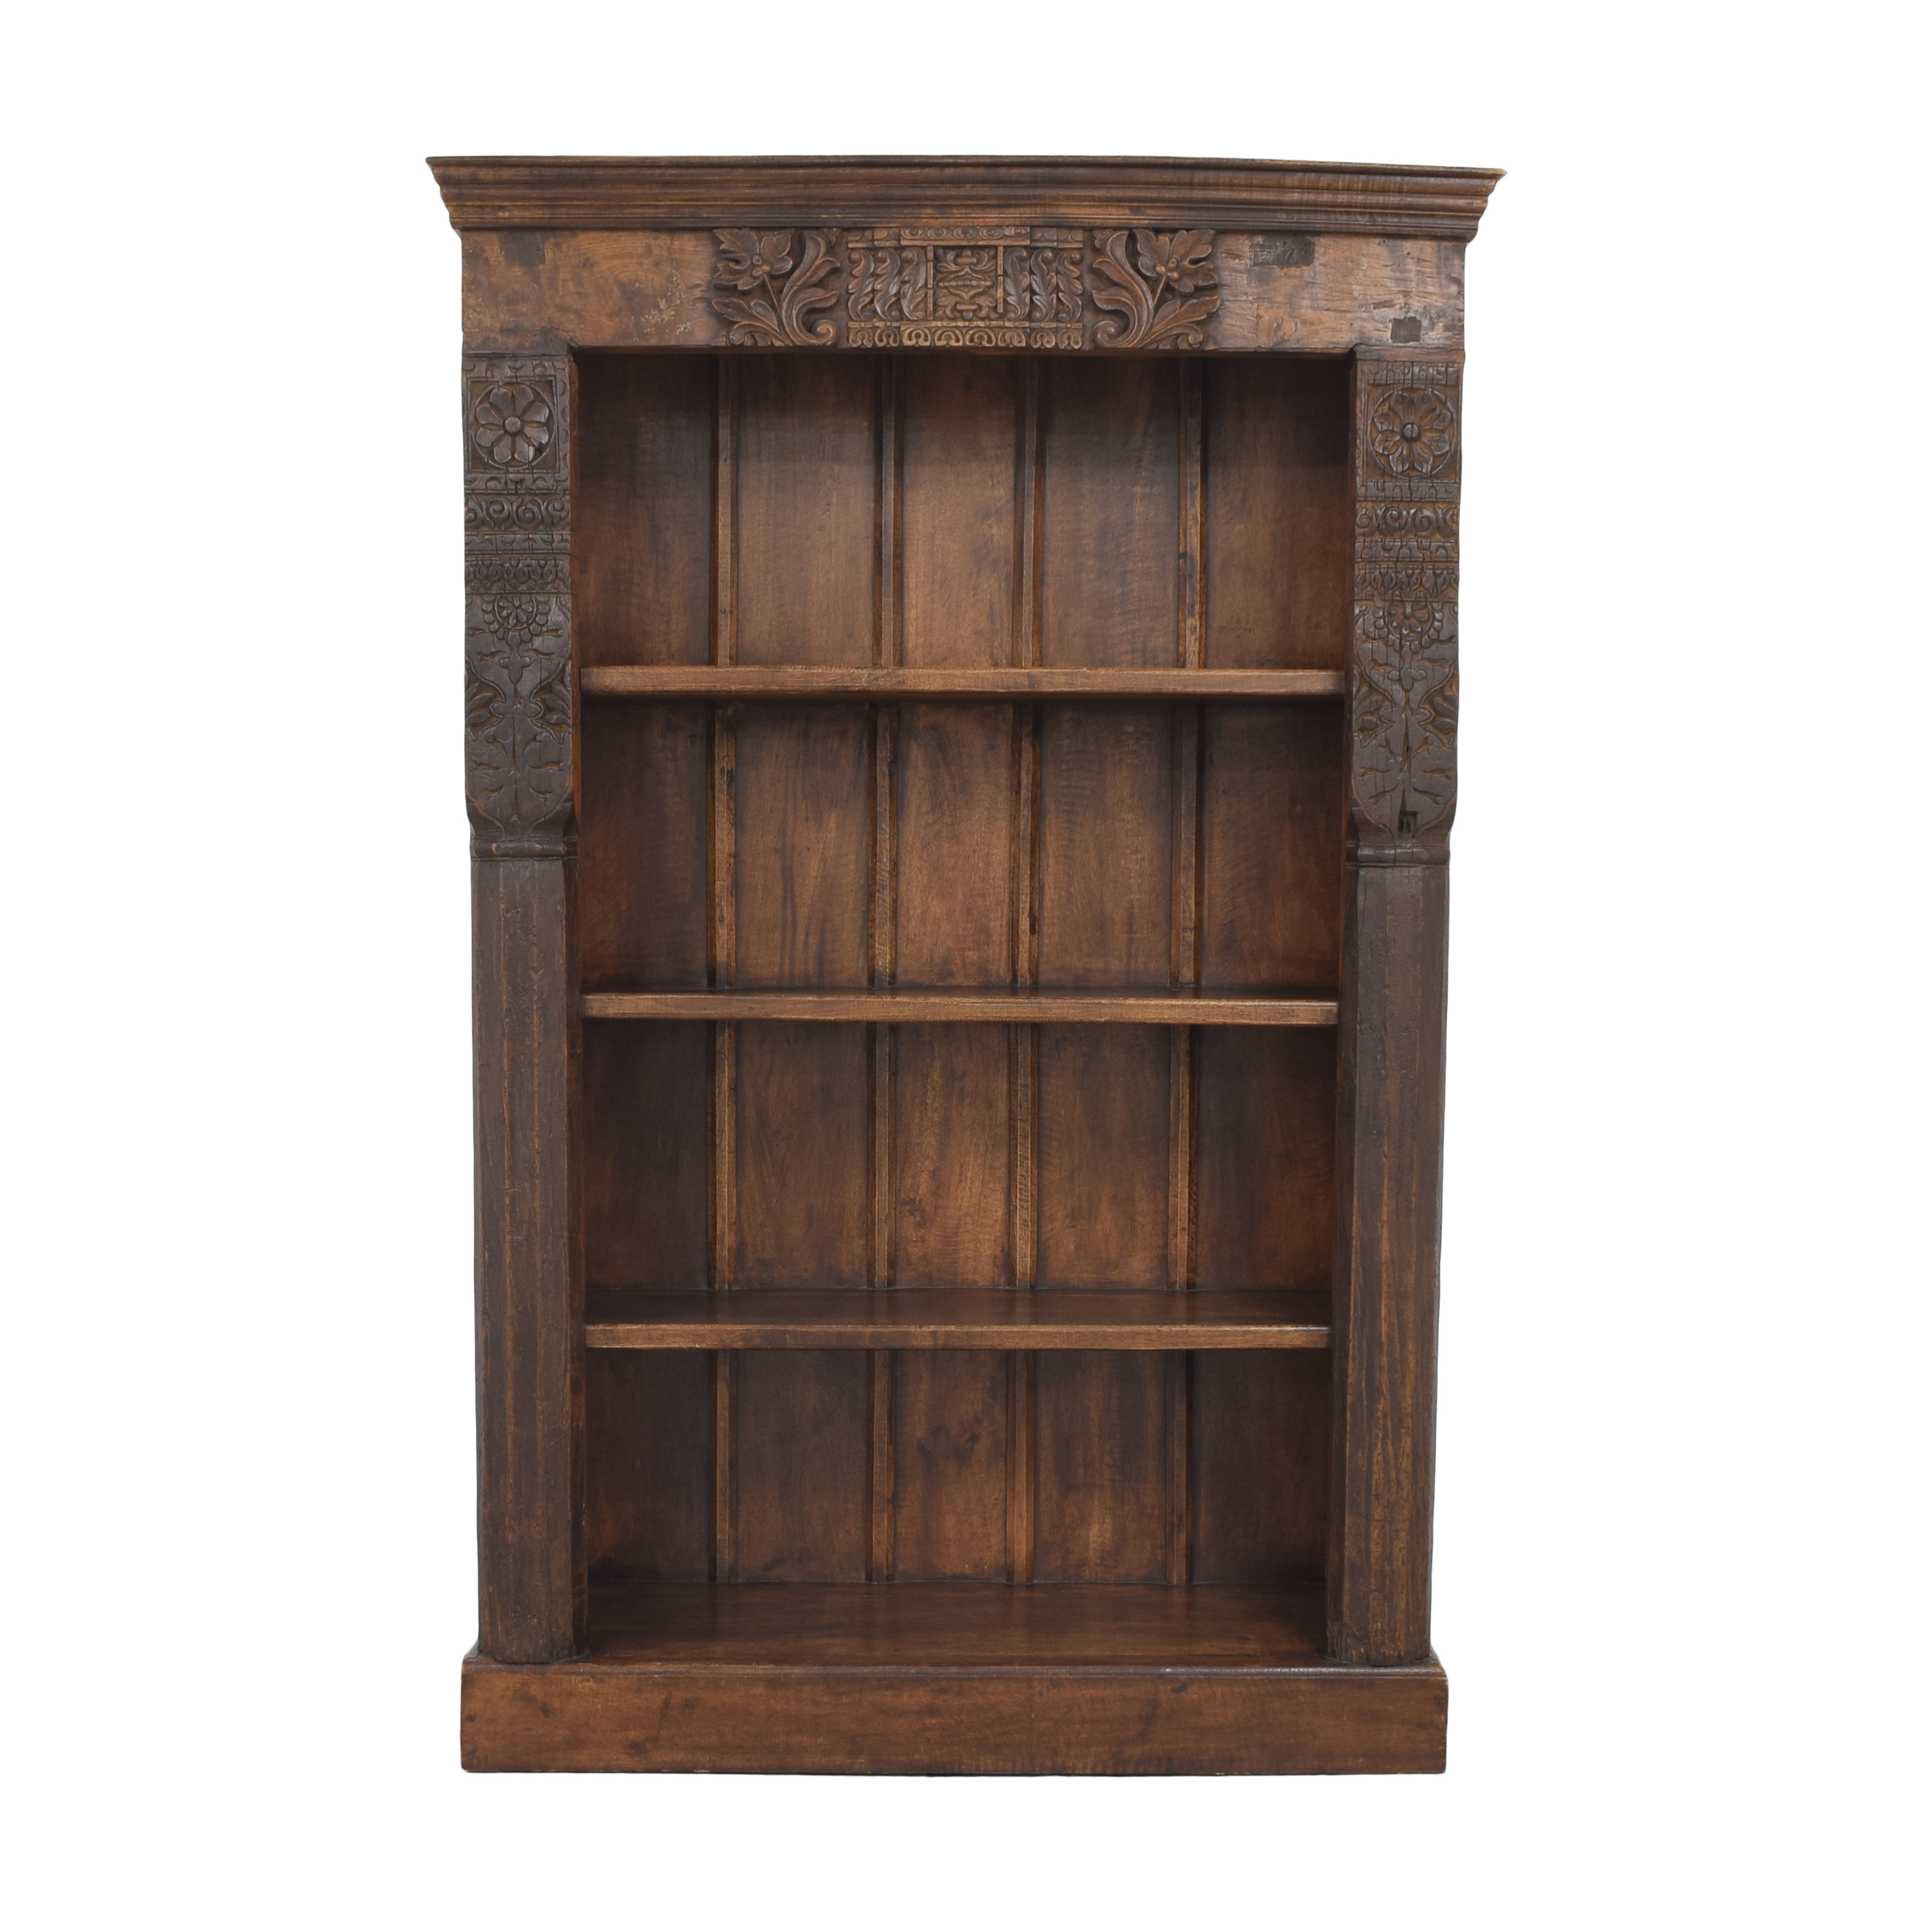 ABC Carpet & Home ABC Carpet & Home Carved Bookcase price